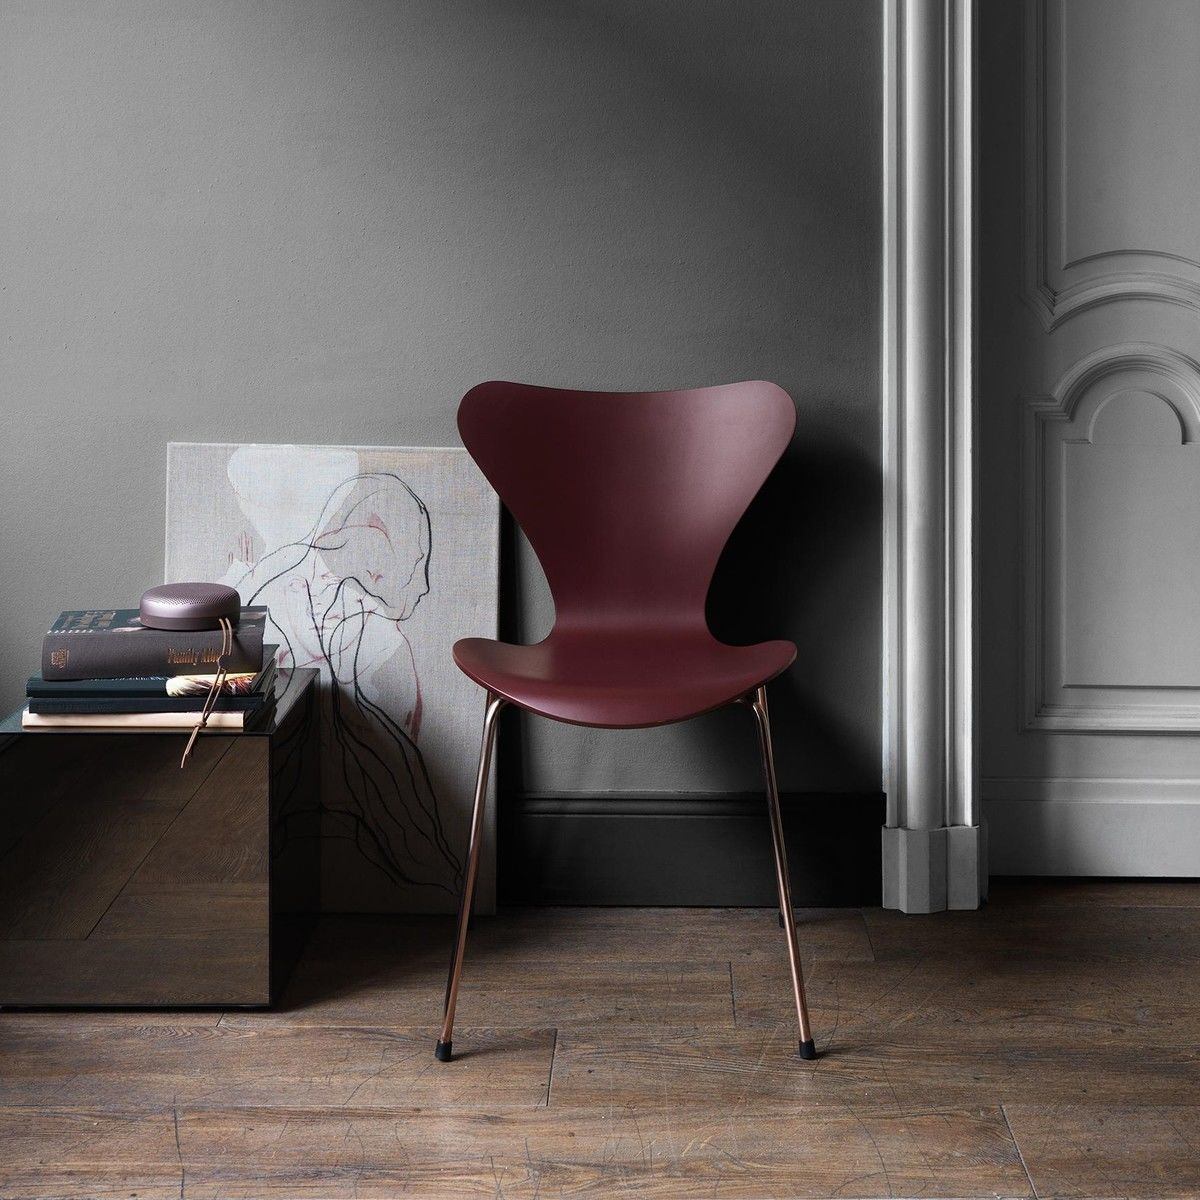 limited edition series 7 chair fritz hansen. Black Bedroom Furniture Sets. Home Design Ideas